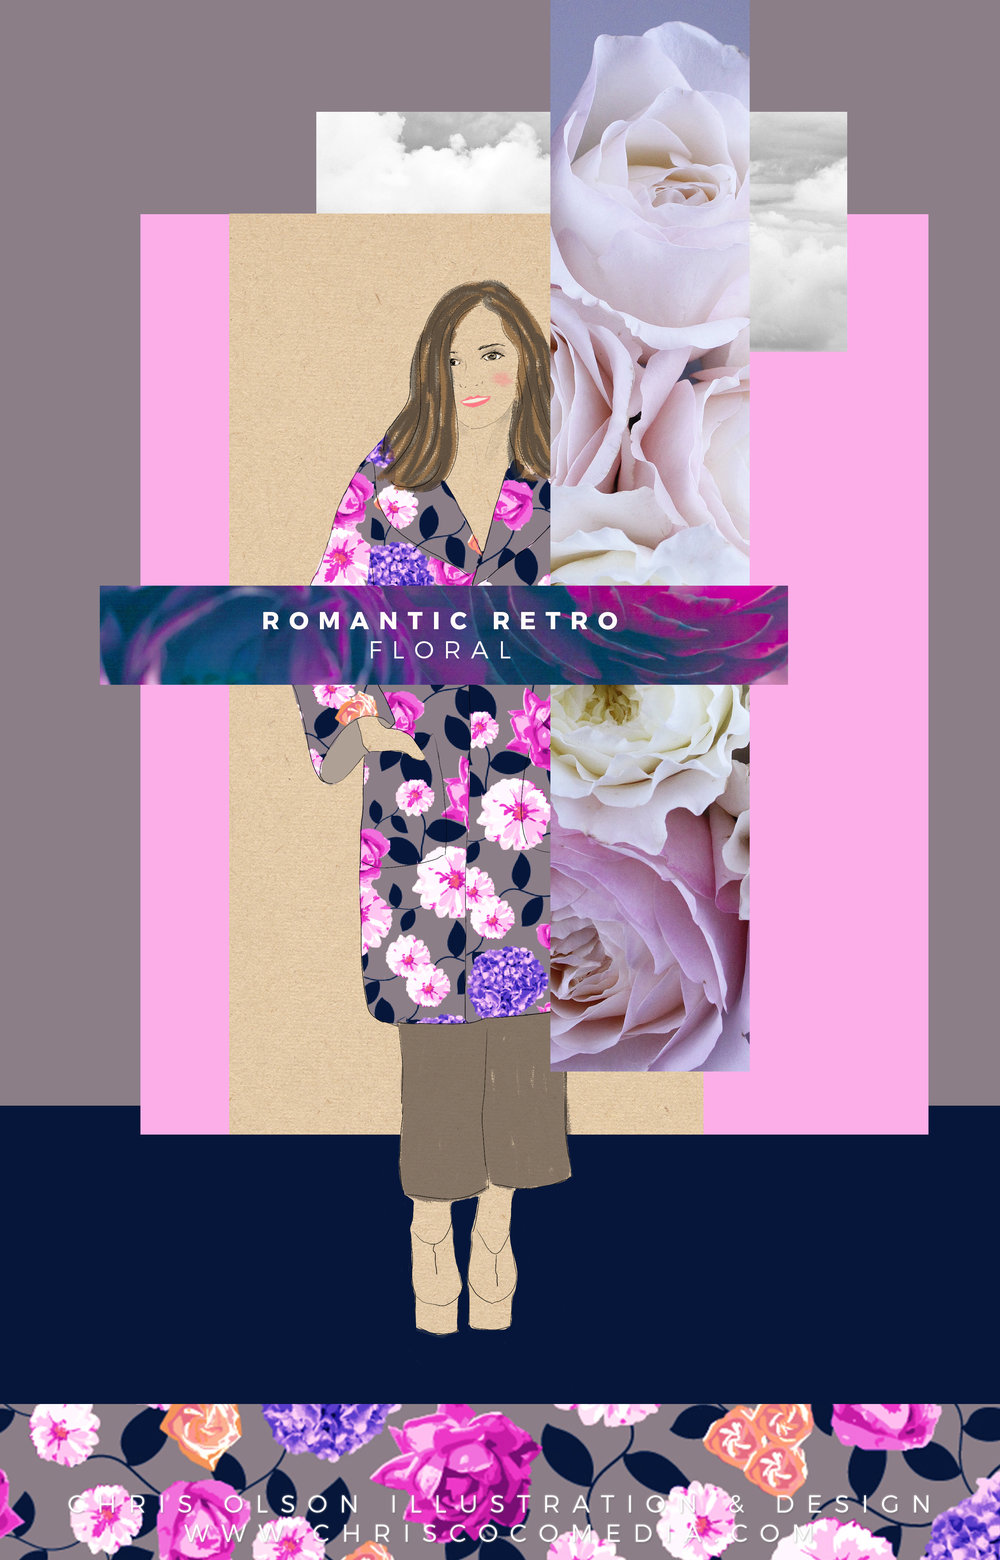 Here is some of my inspiration behind the new romantic floral textile. (Design by Chris Olson)